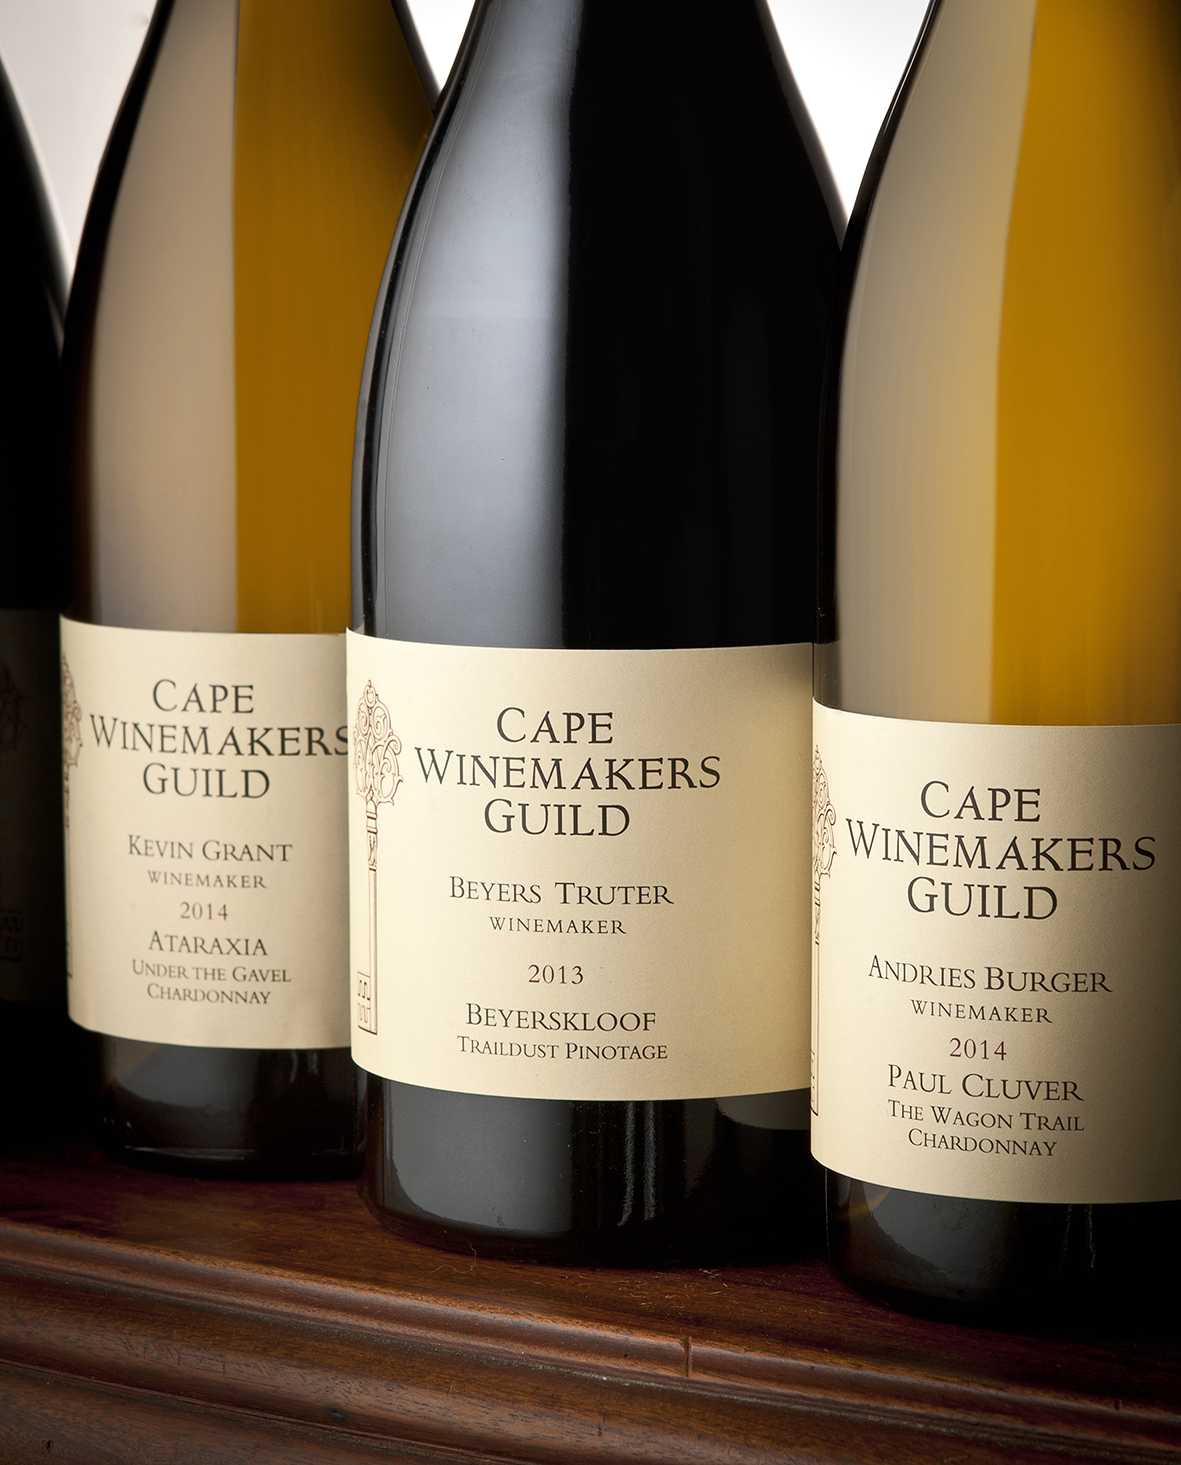 Wine lovers get to taste these rare auction wines and engage with masters of their craft.